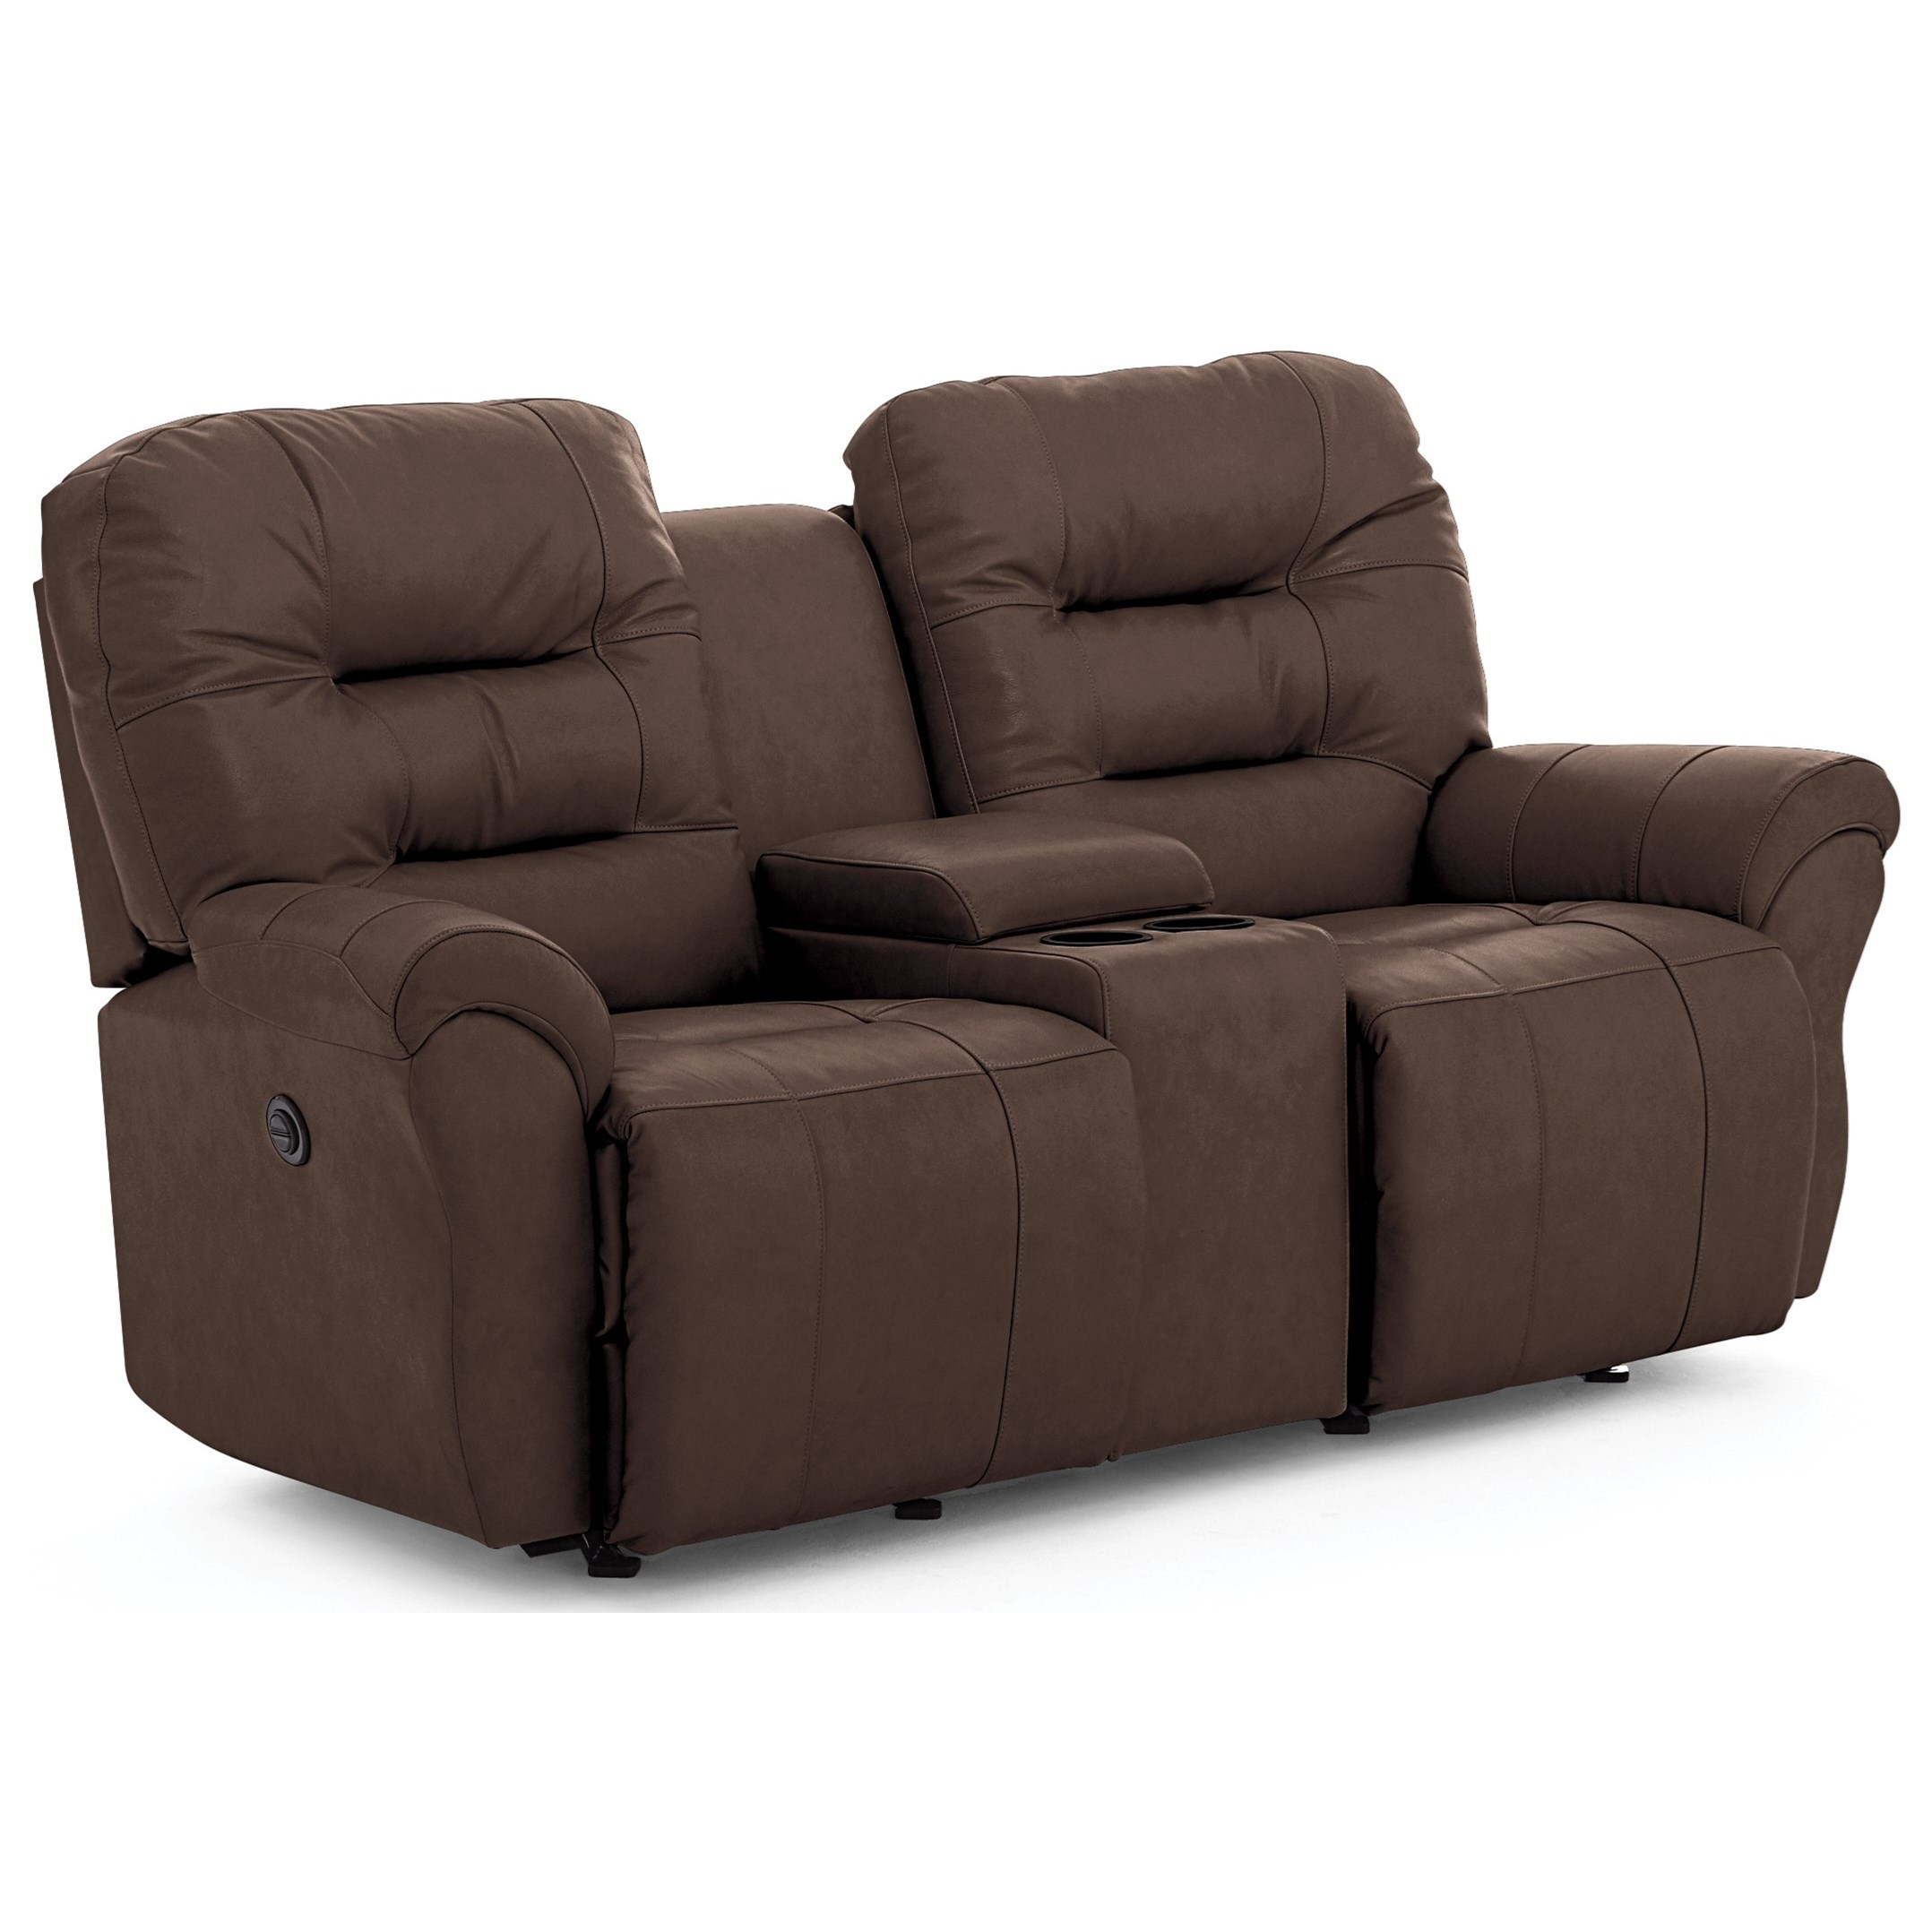 Unity Space Saver Console Loveseat Chaise by Best Home Furnishings at Best Home Furnishings